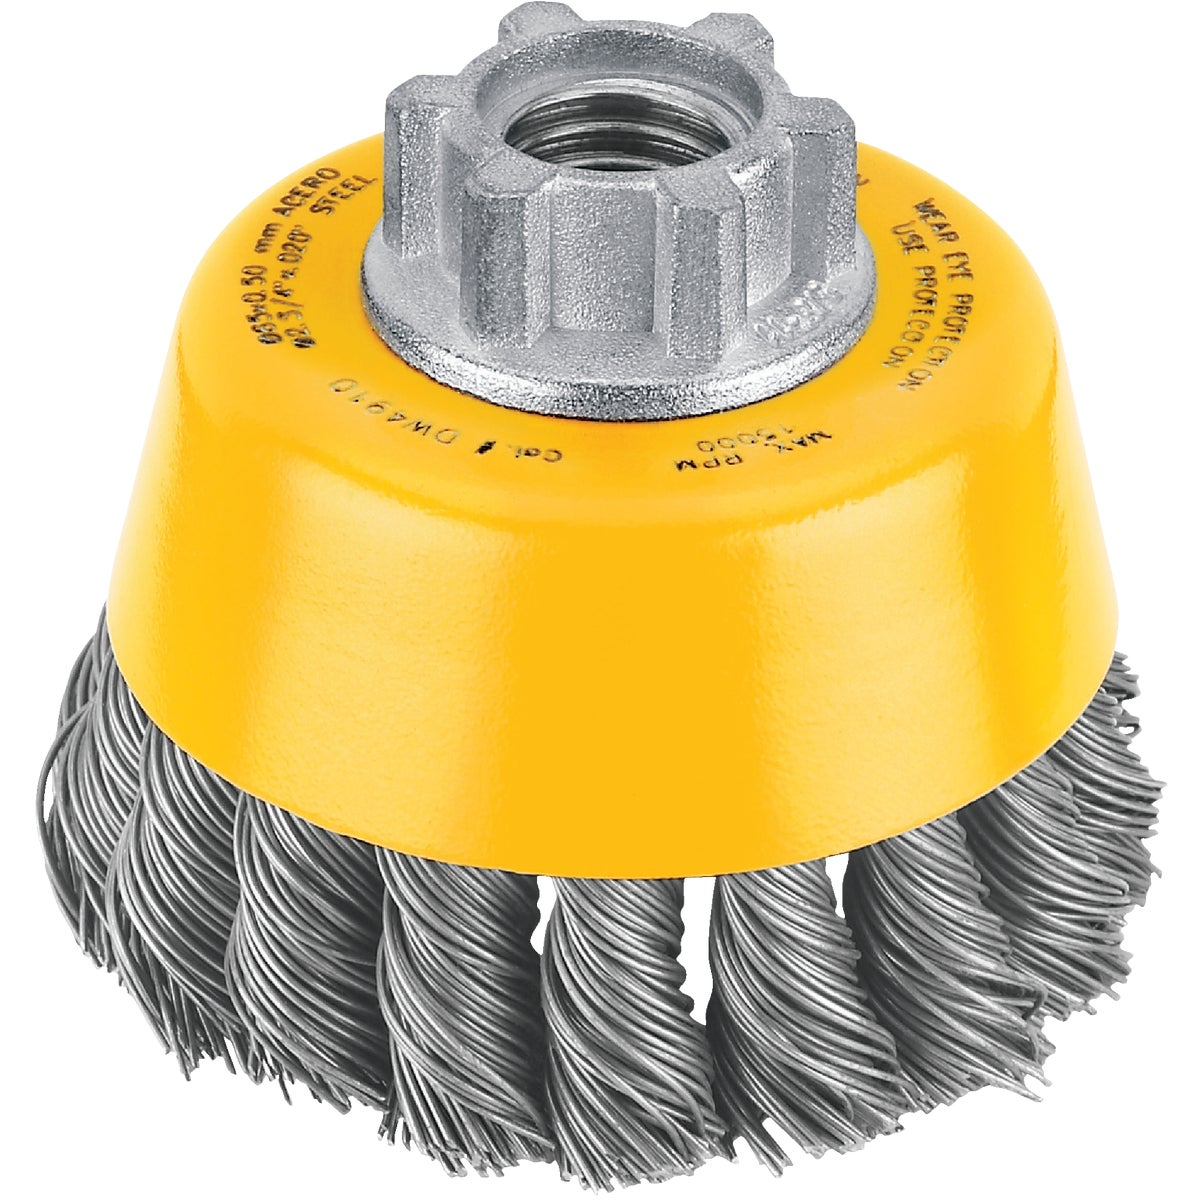 "3"" KNOTTED CUP BRUSH - DW4910 by DeWalt"